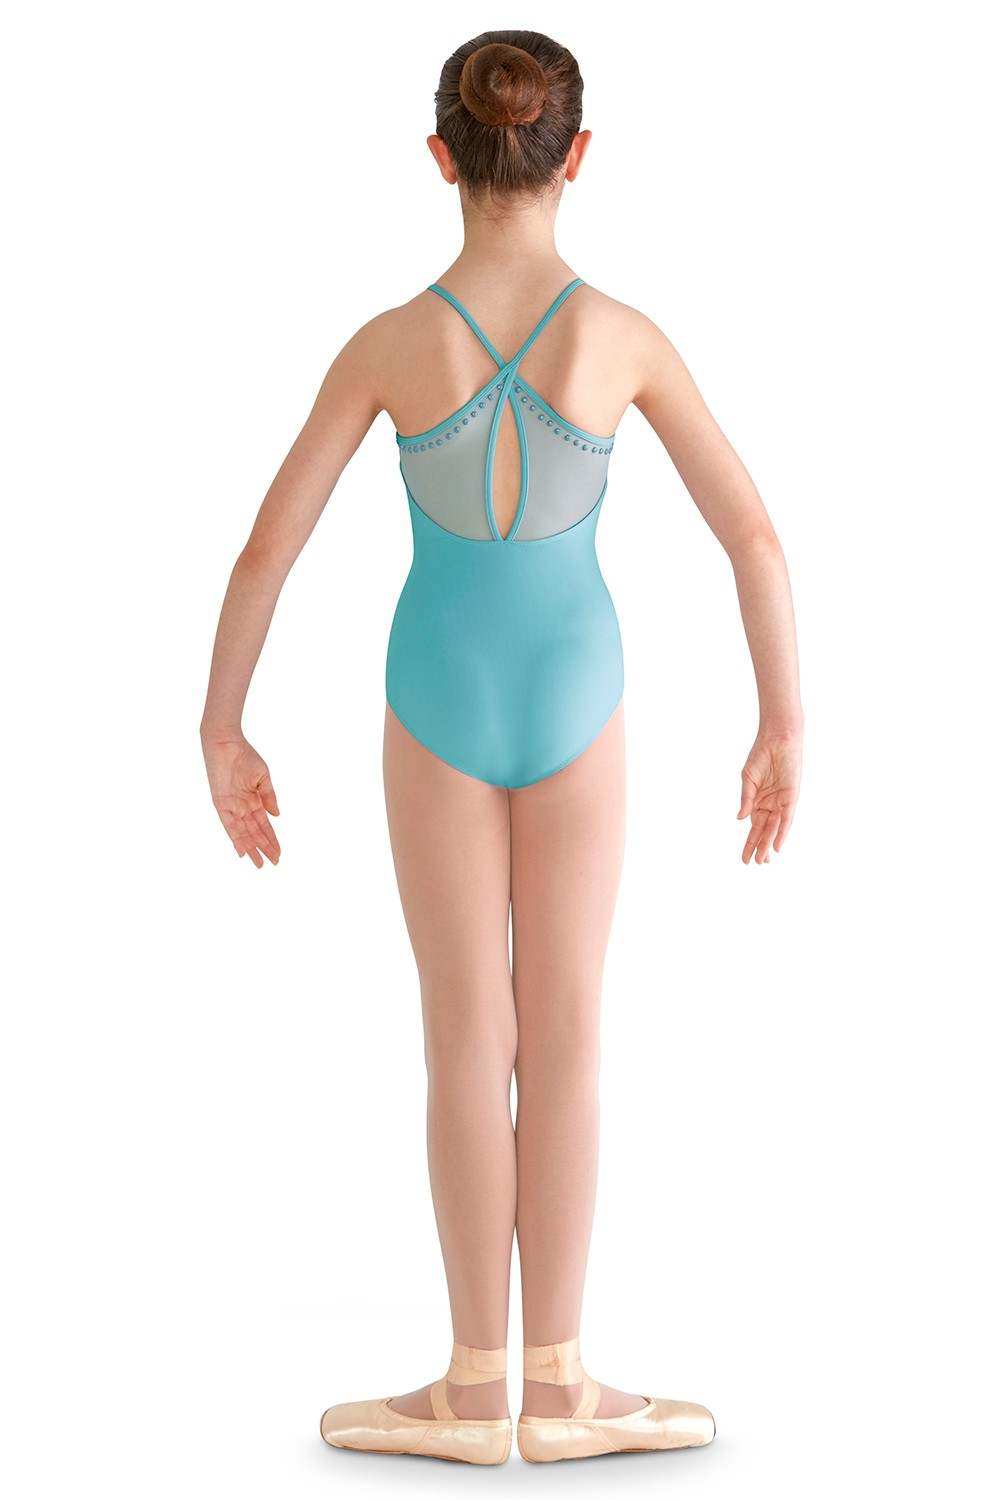 Carci Girls Camisole Leotards